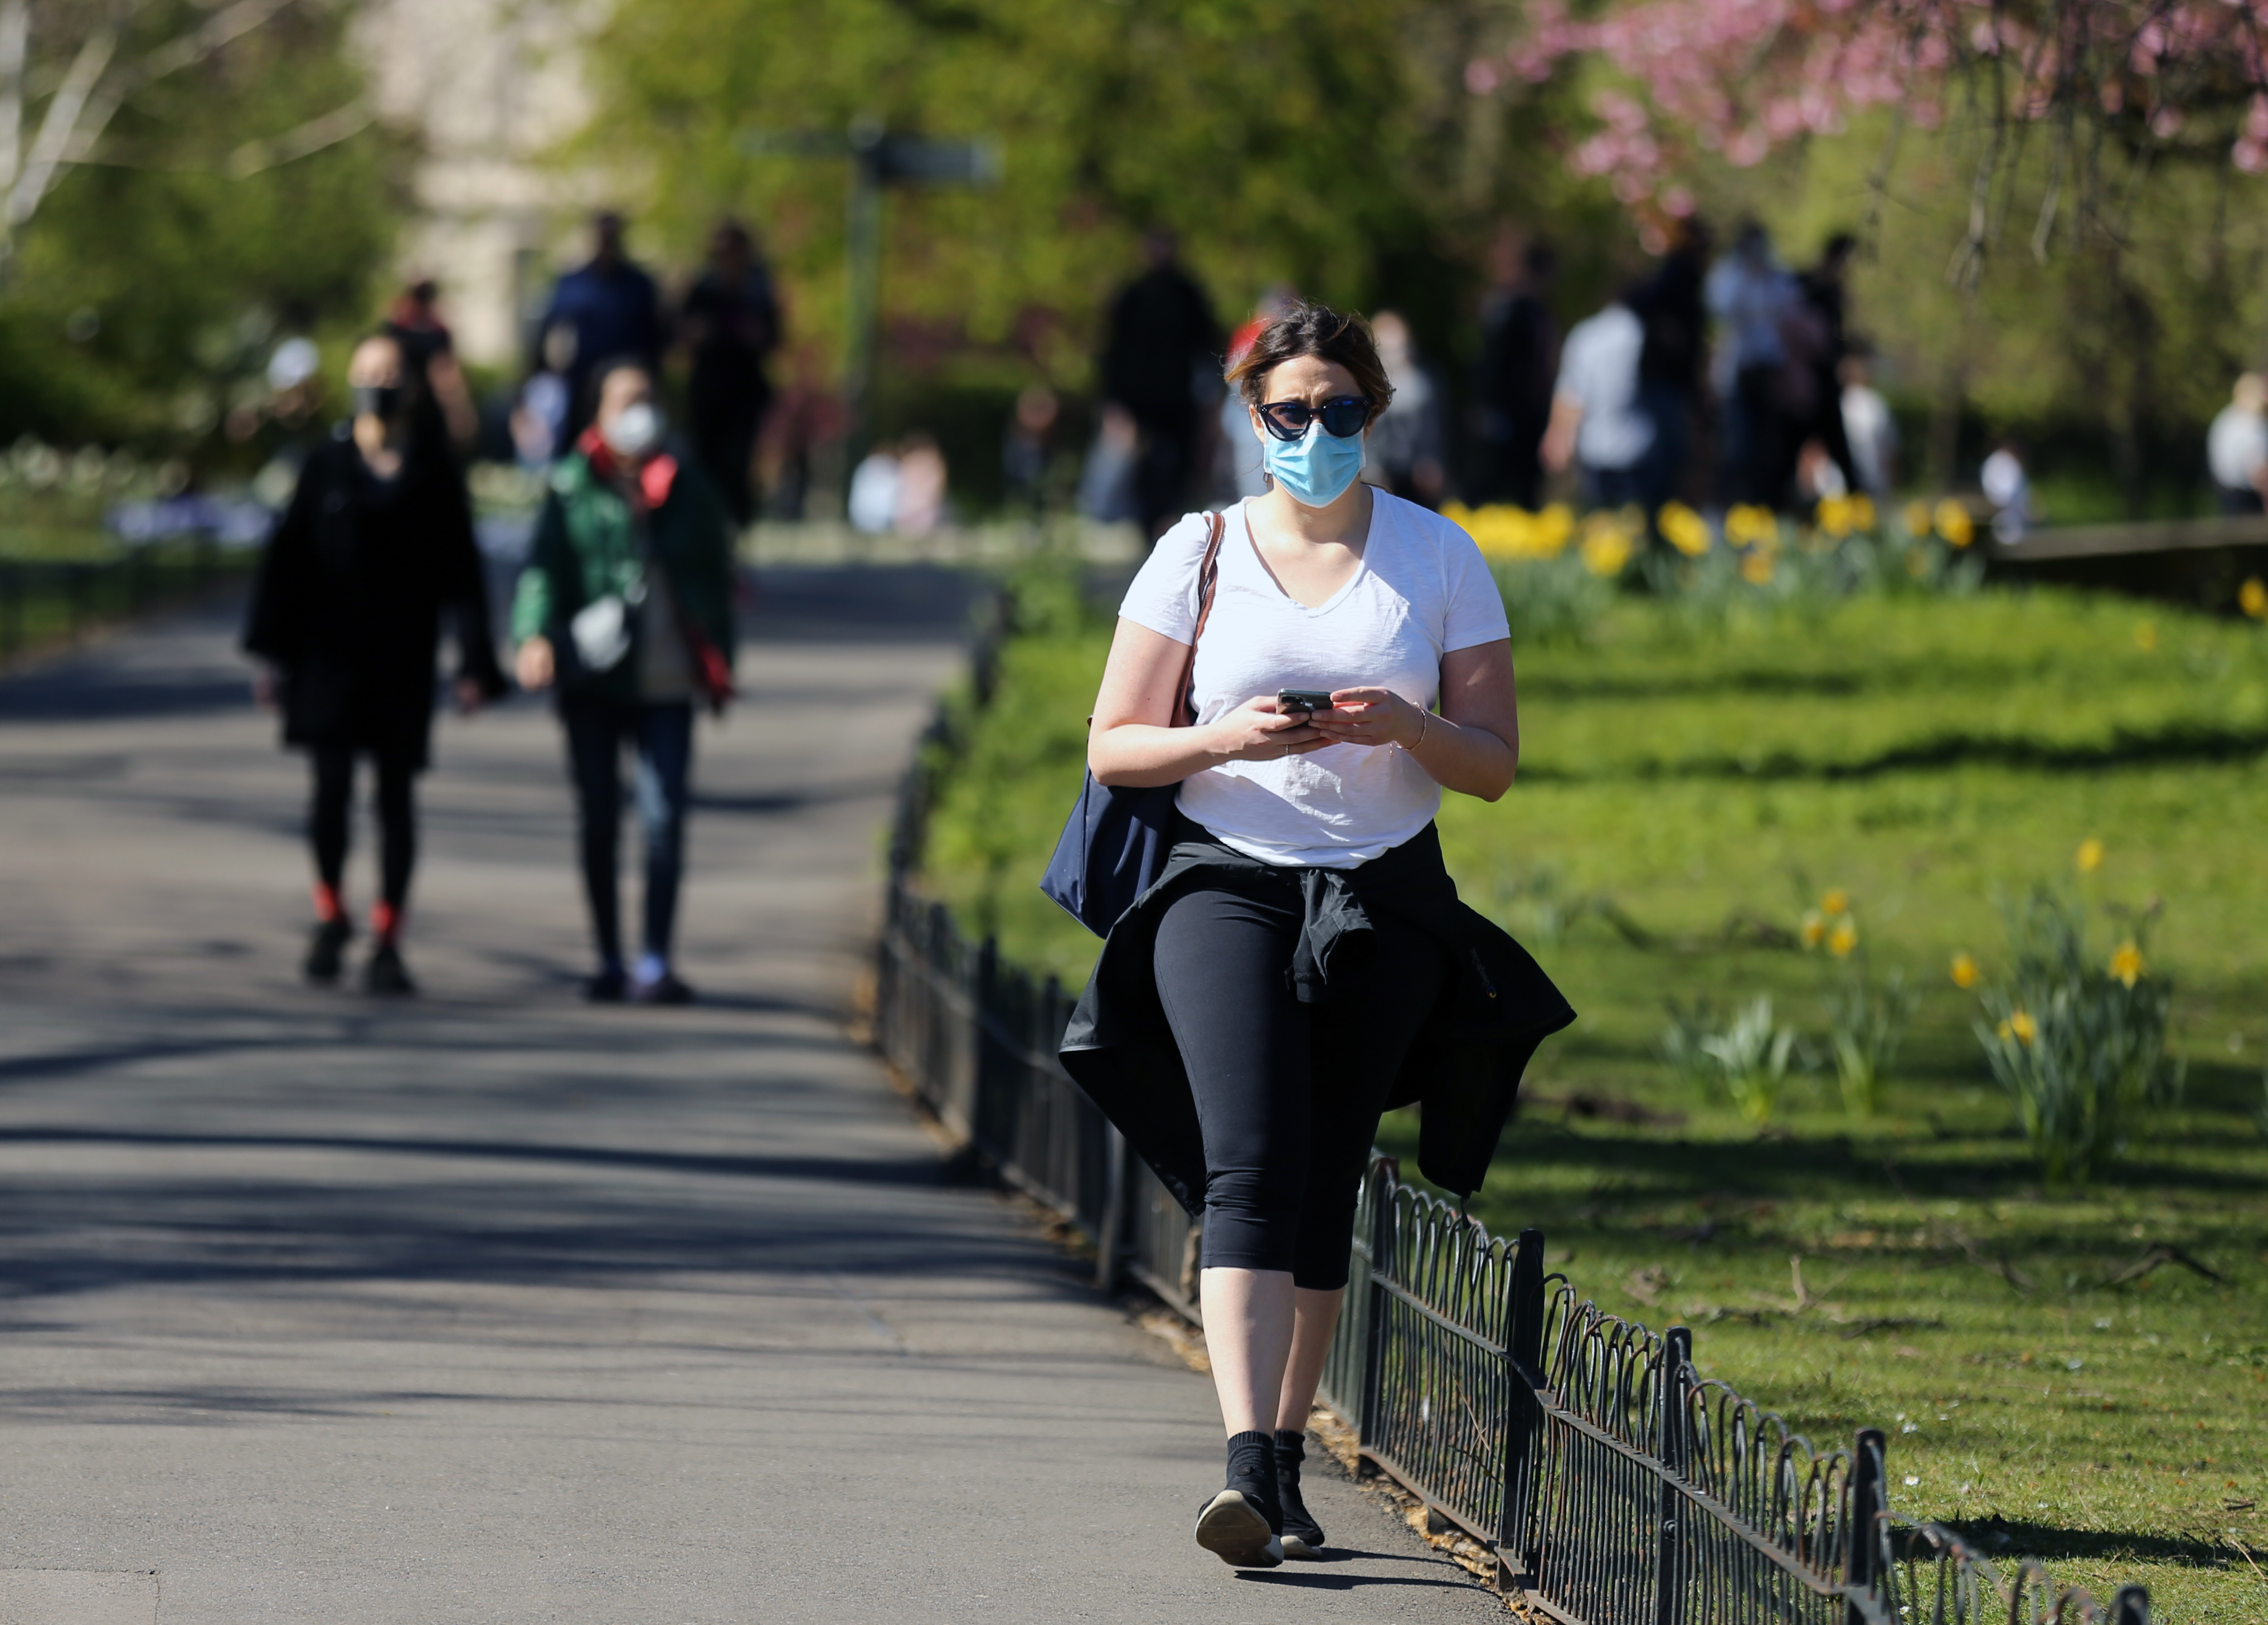 A woman wearing protective face masks enjoys the warm weather at Regent's Park, North London, as the UK continues in lockdown to help curb the spread of the coronavirus